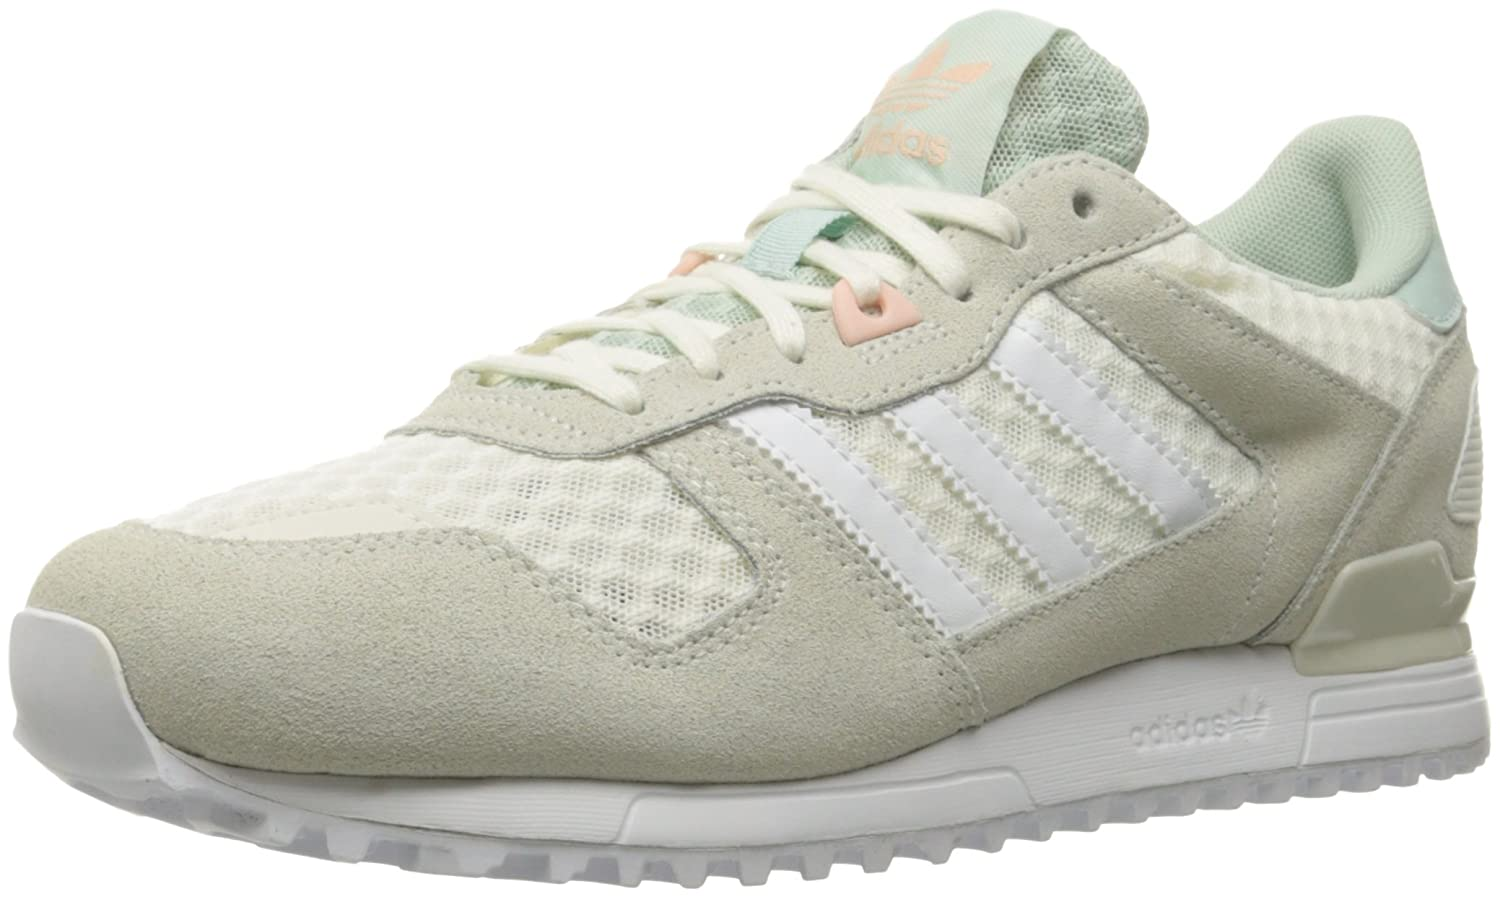 Women's adidas ZX 700 Shoes White | adidas US Shoes Off